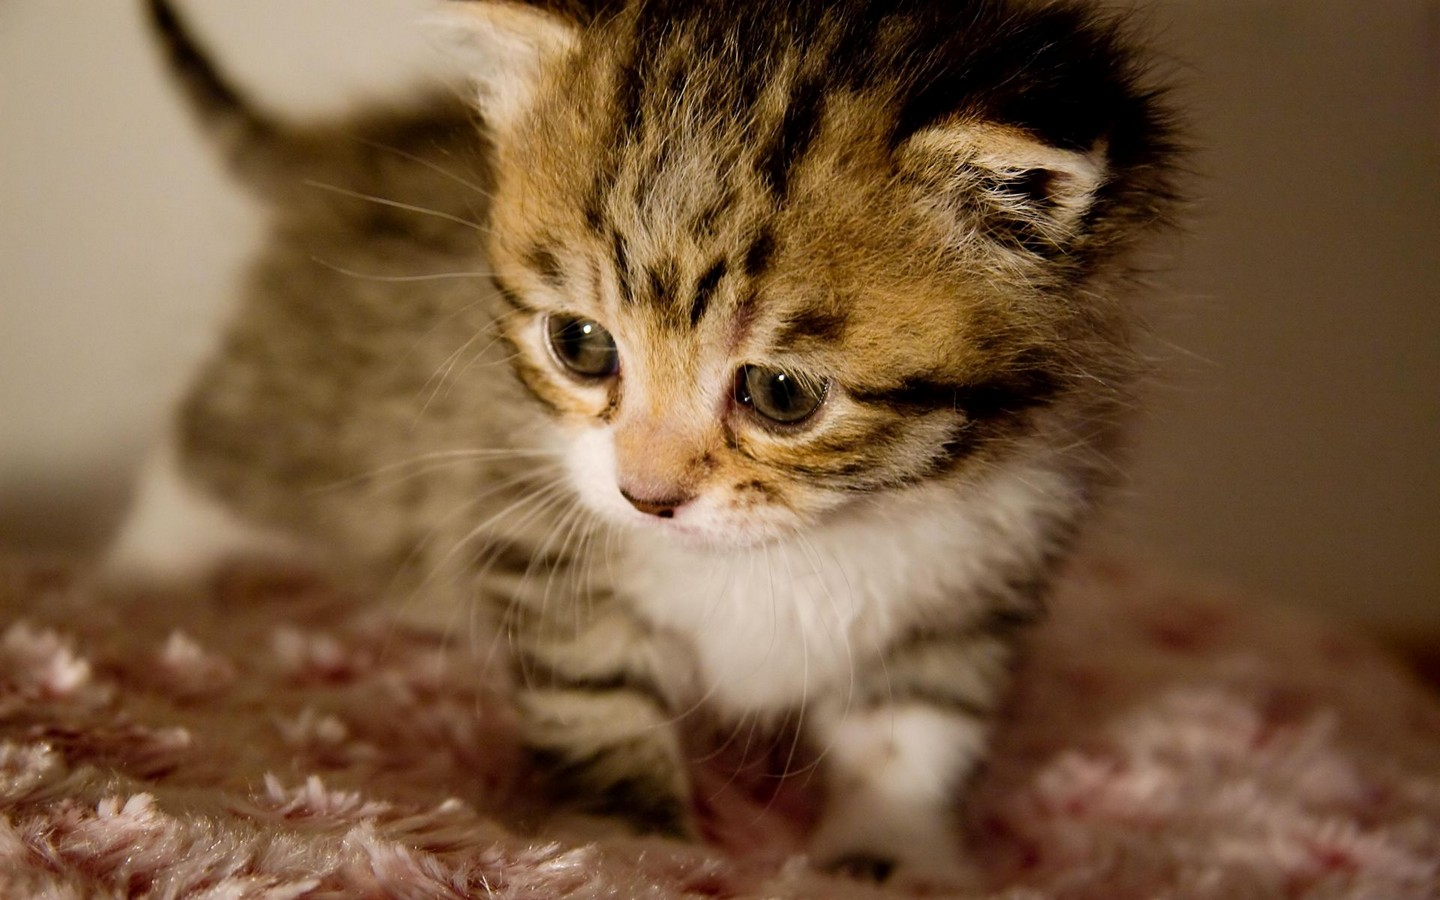 Cute Kittens   Pictures   The Wondrous Pics 1440x900